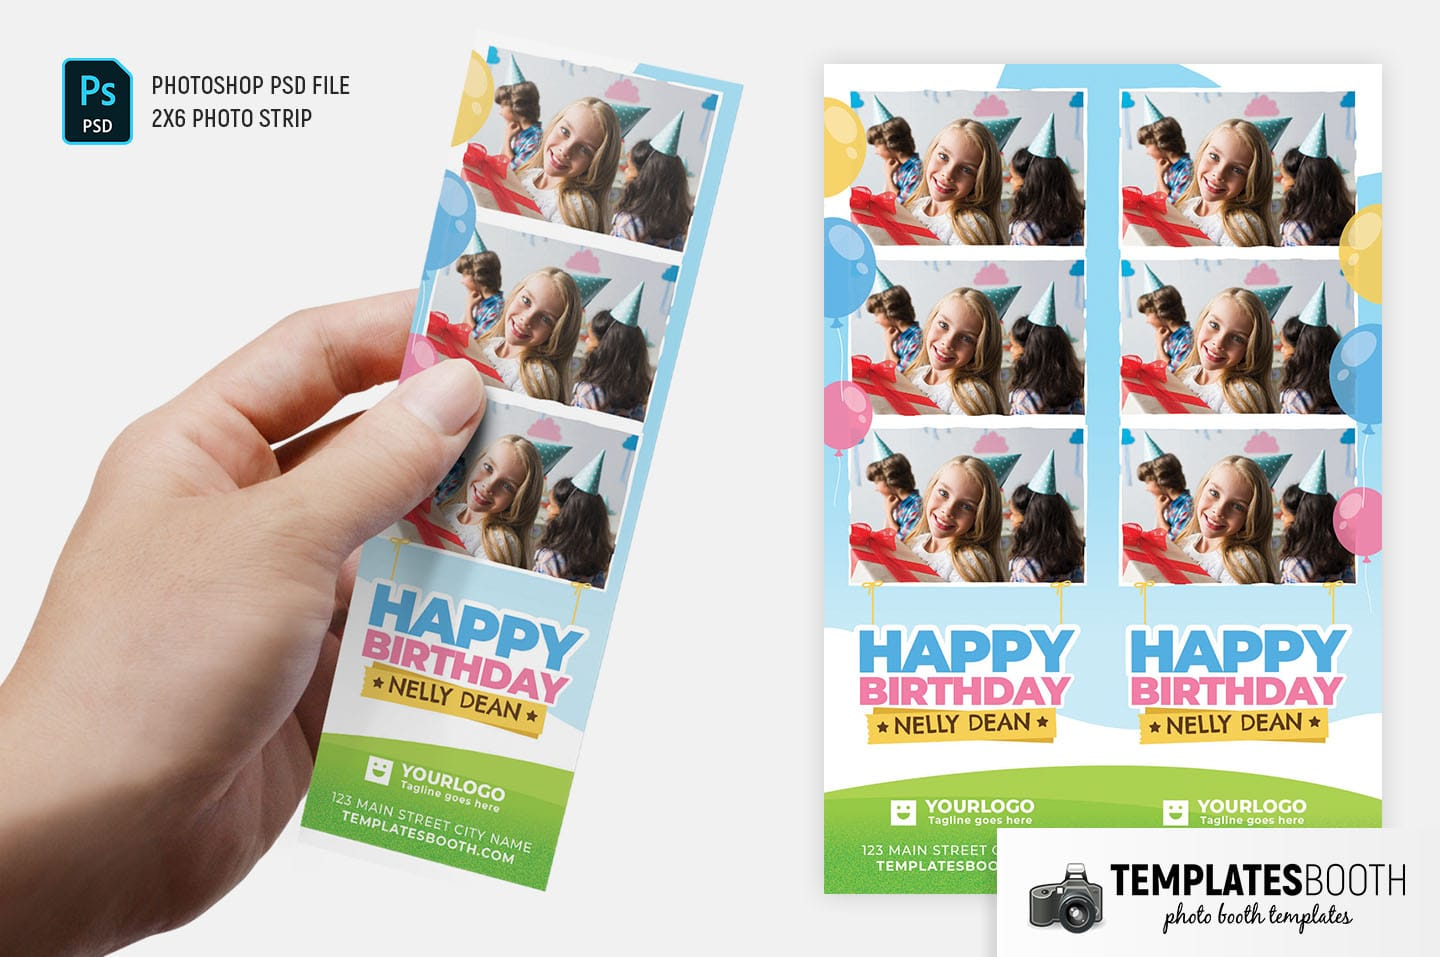 Happy Birthday Photo Booth Template (2x6 Photo Strip)